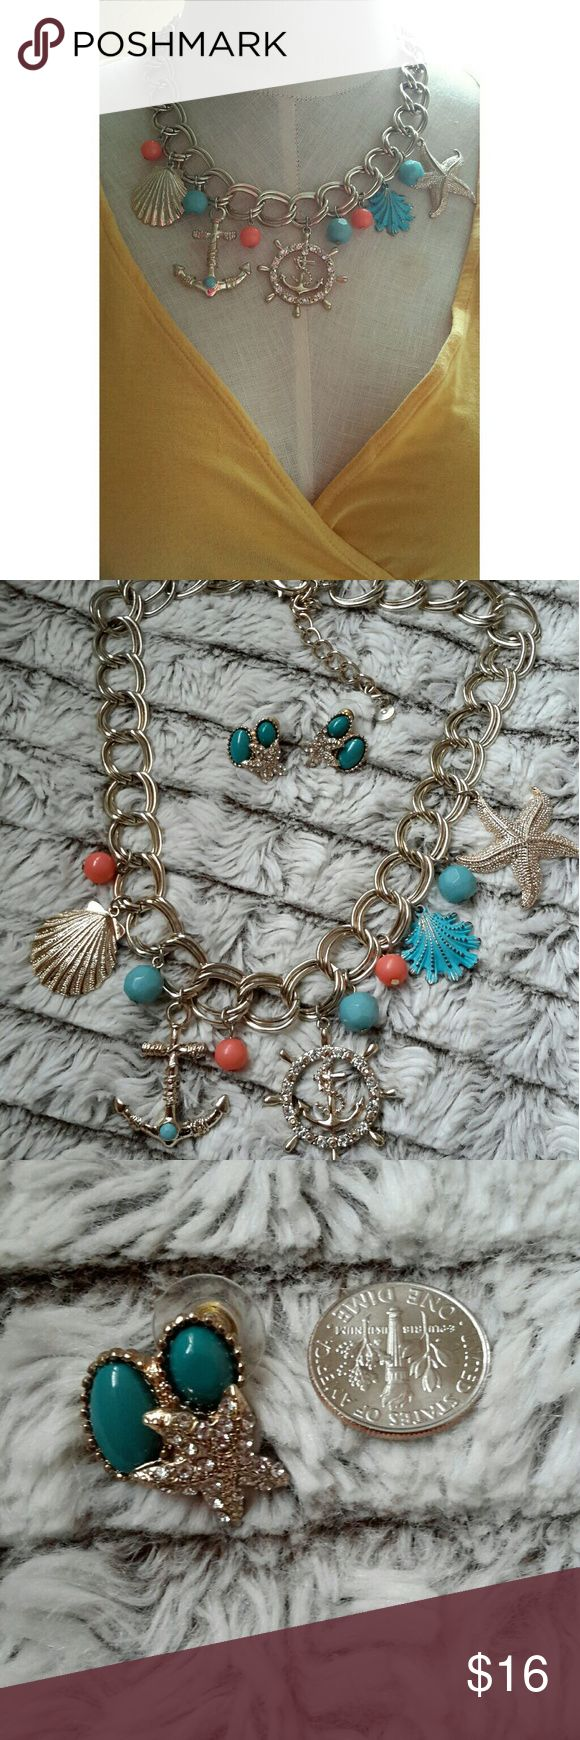 """⚓ Vacation Inspired Link Chain Necklace Earrings ⚓ Gorgeous set!  Questions are welcomed. 8"""" length. Jewelry Necklaces"""